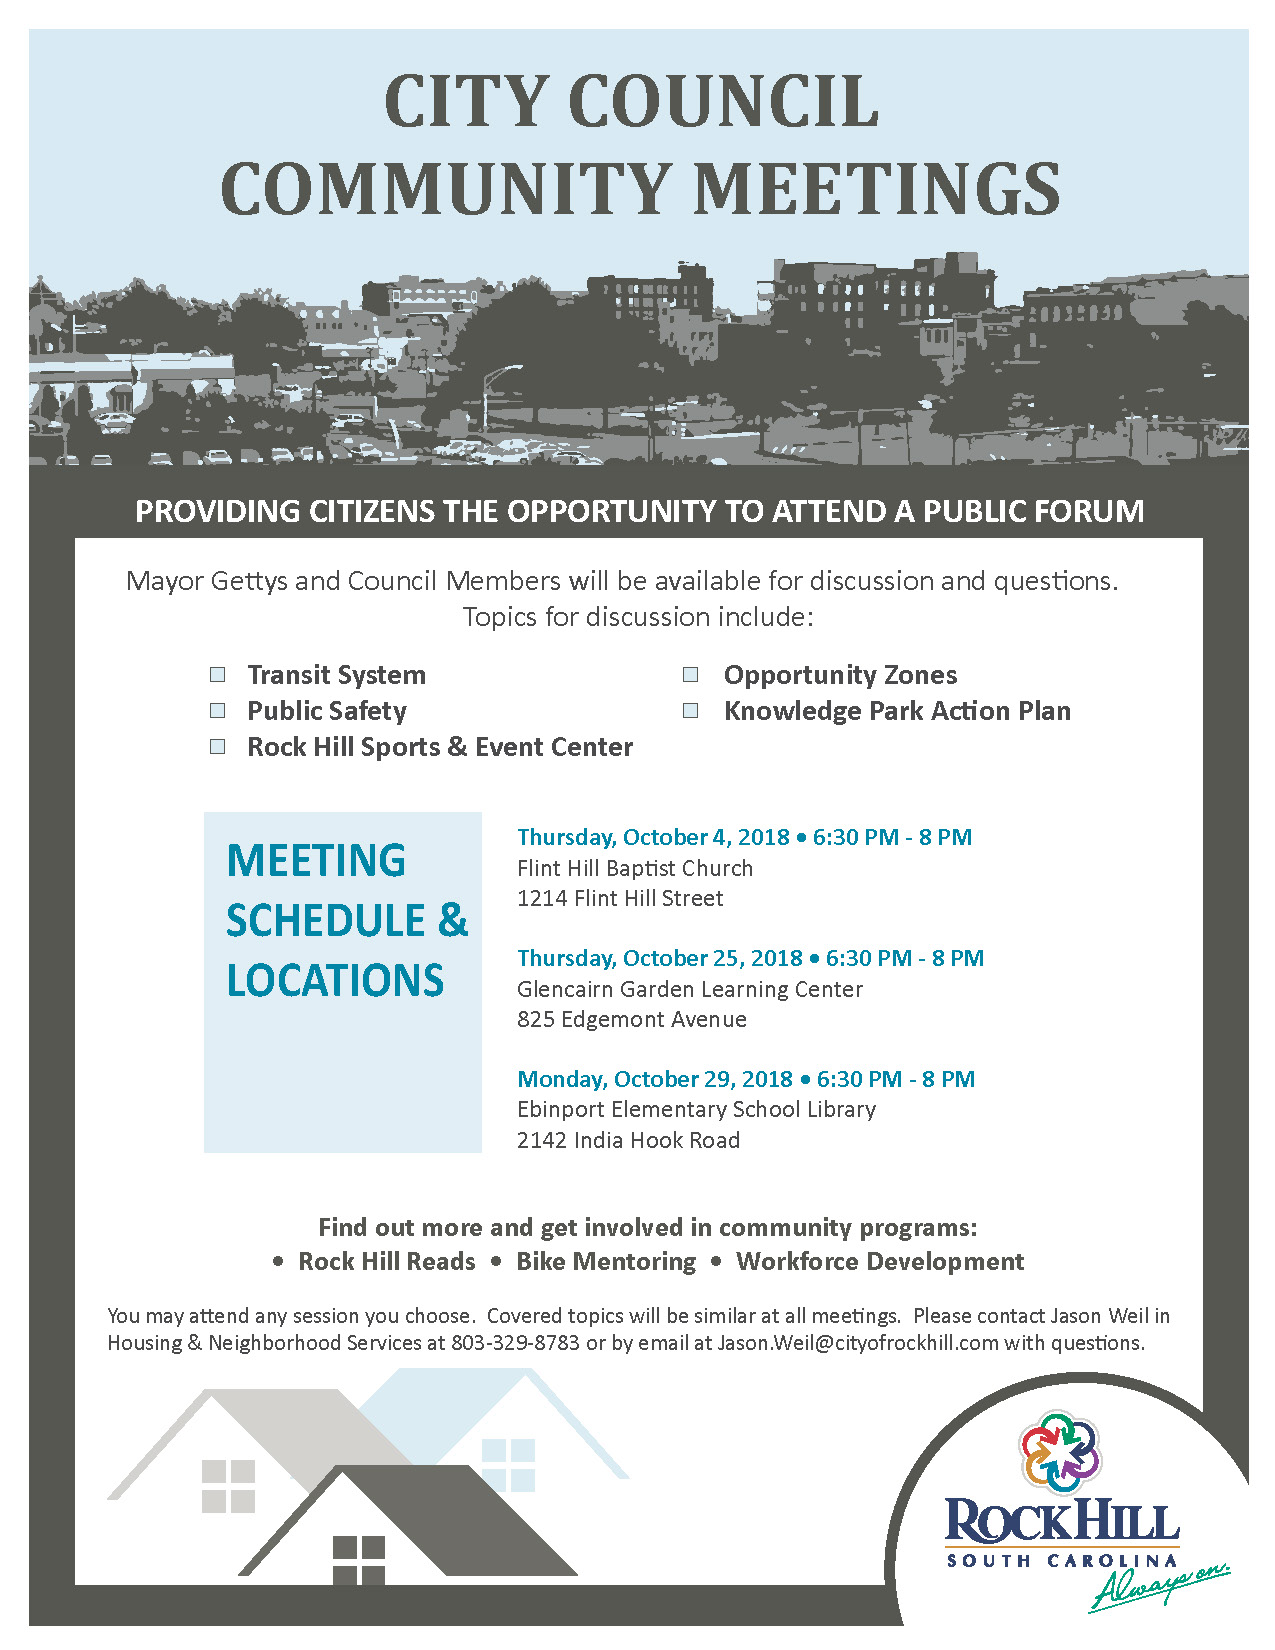 City Council Community Meetings 2018